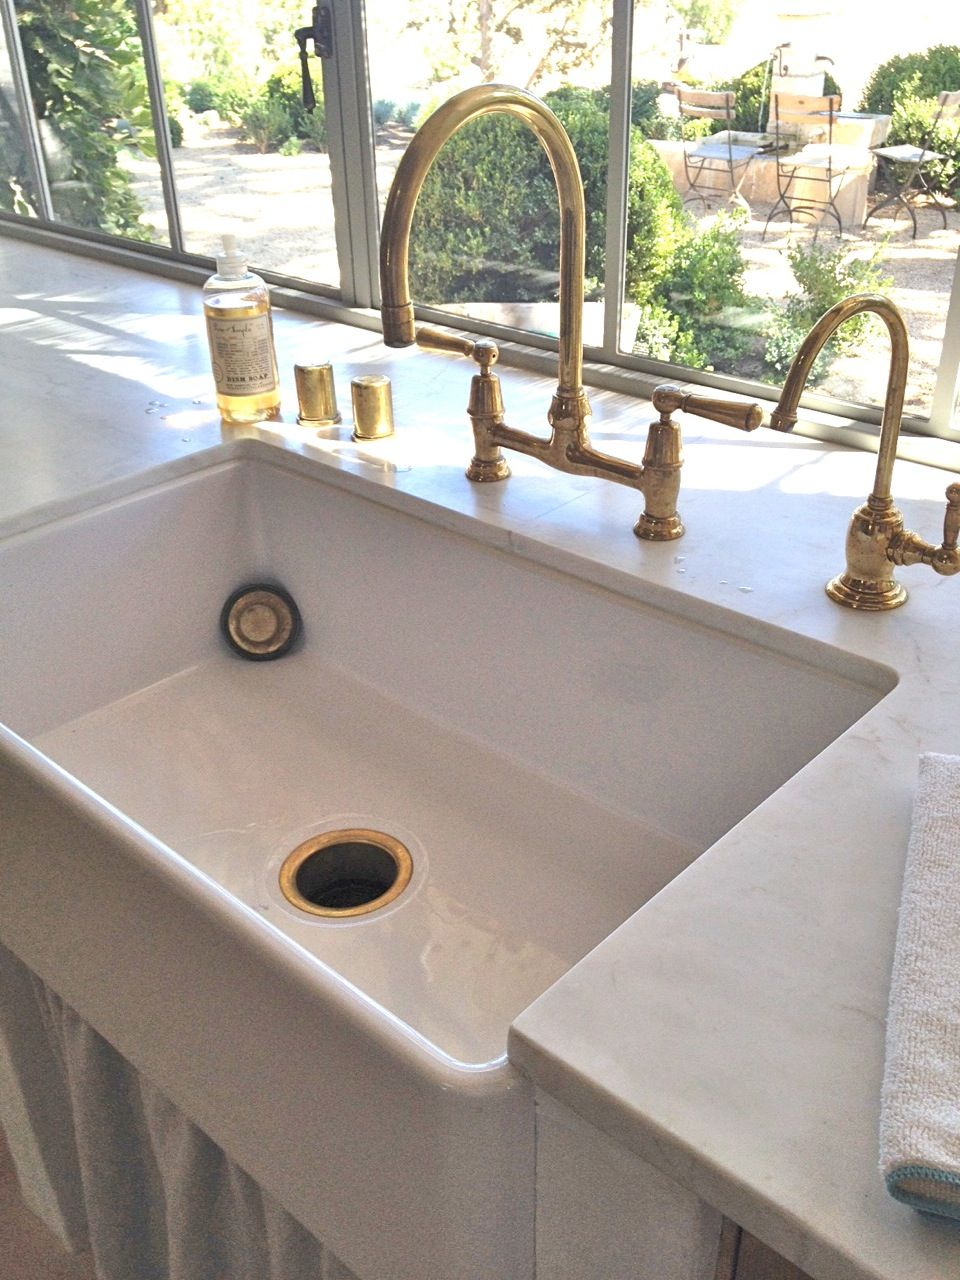 brass kitchen faucet Related image Brass TapBrushed Brass FaucetKitchen